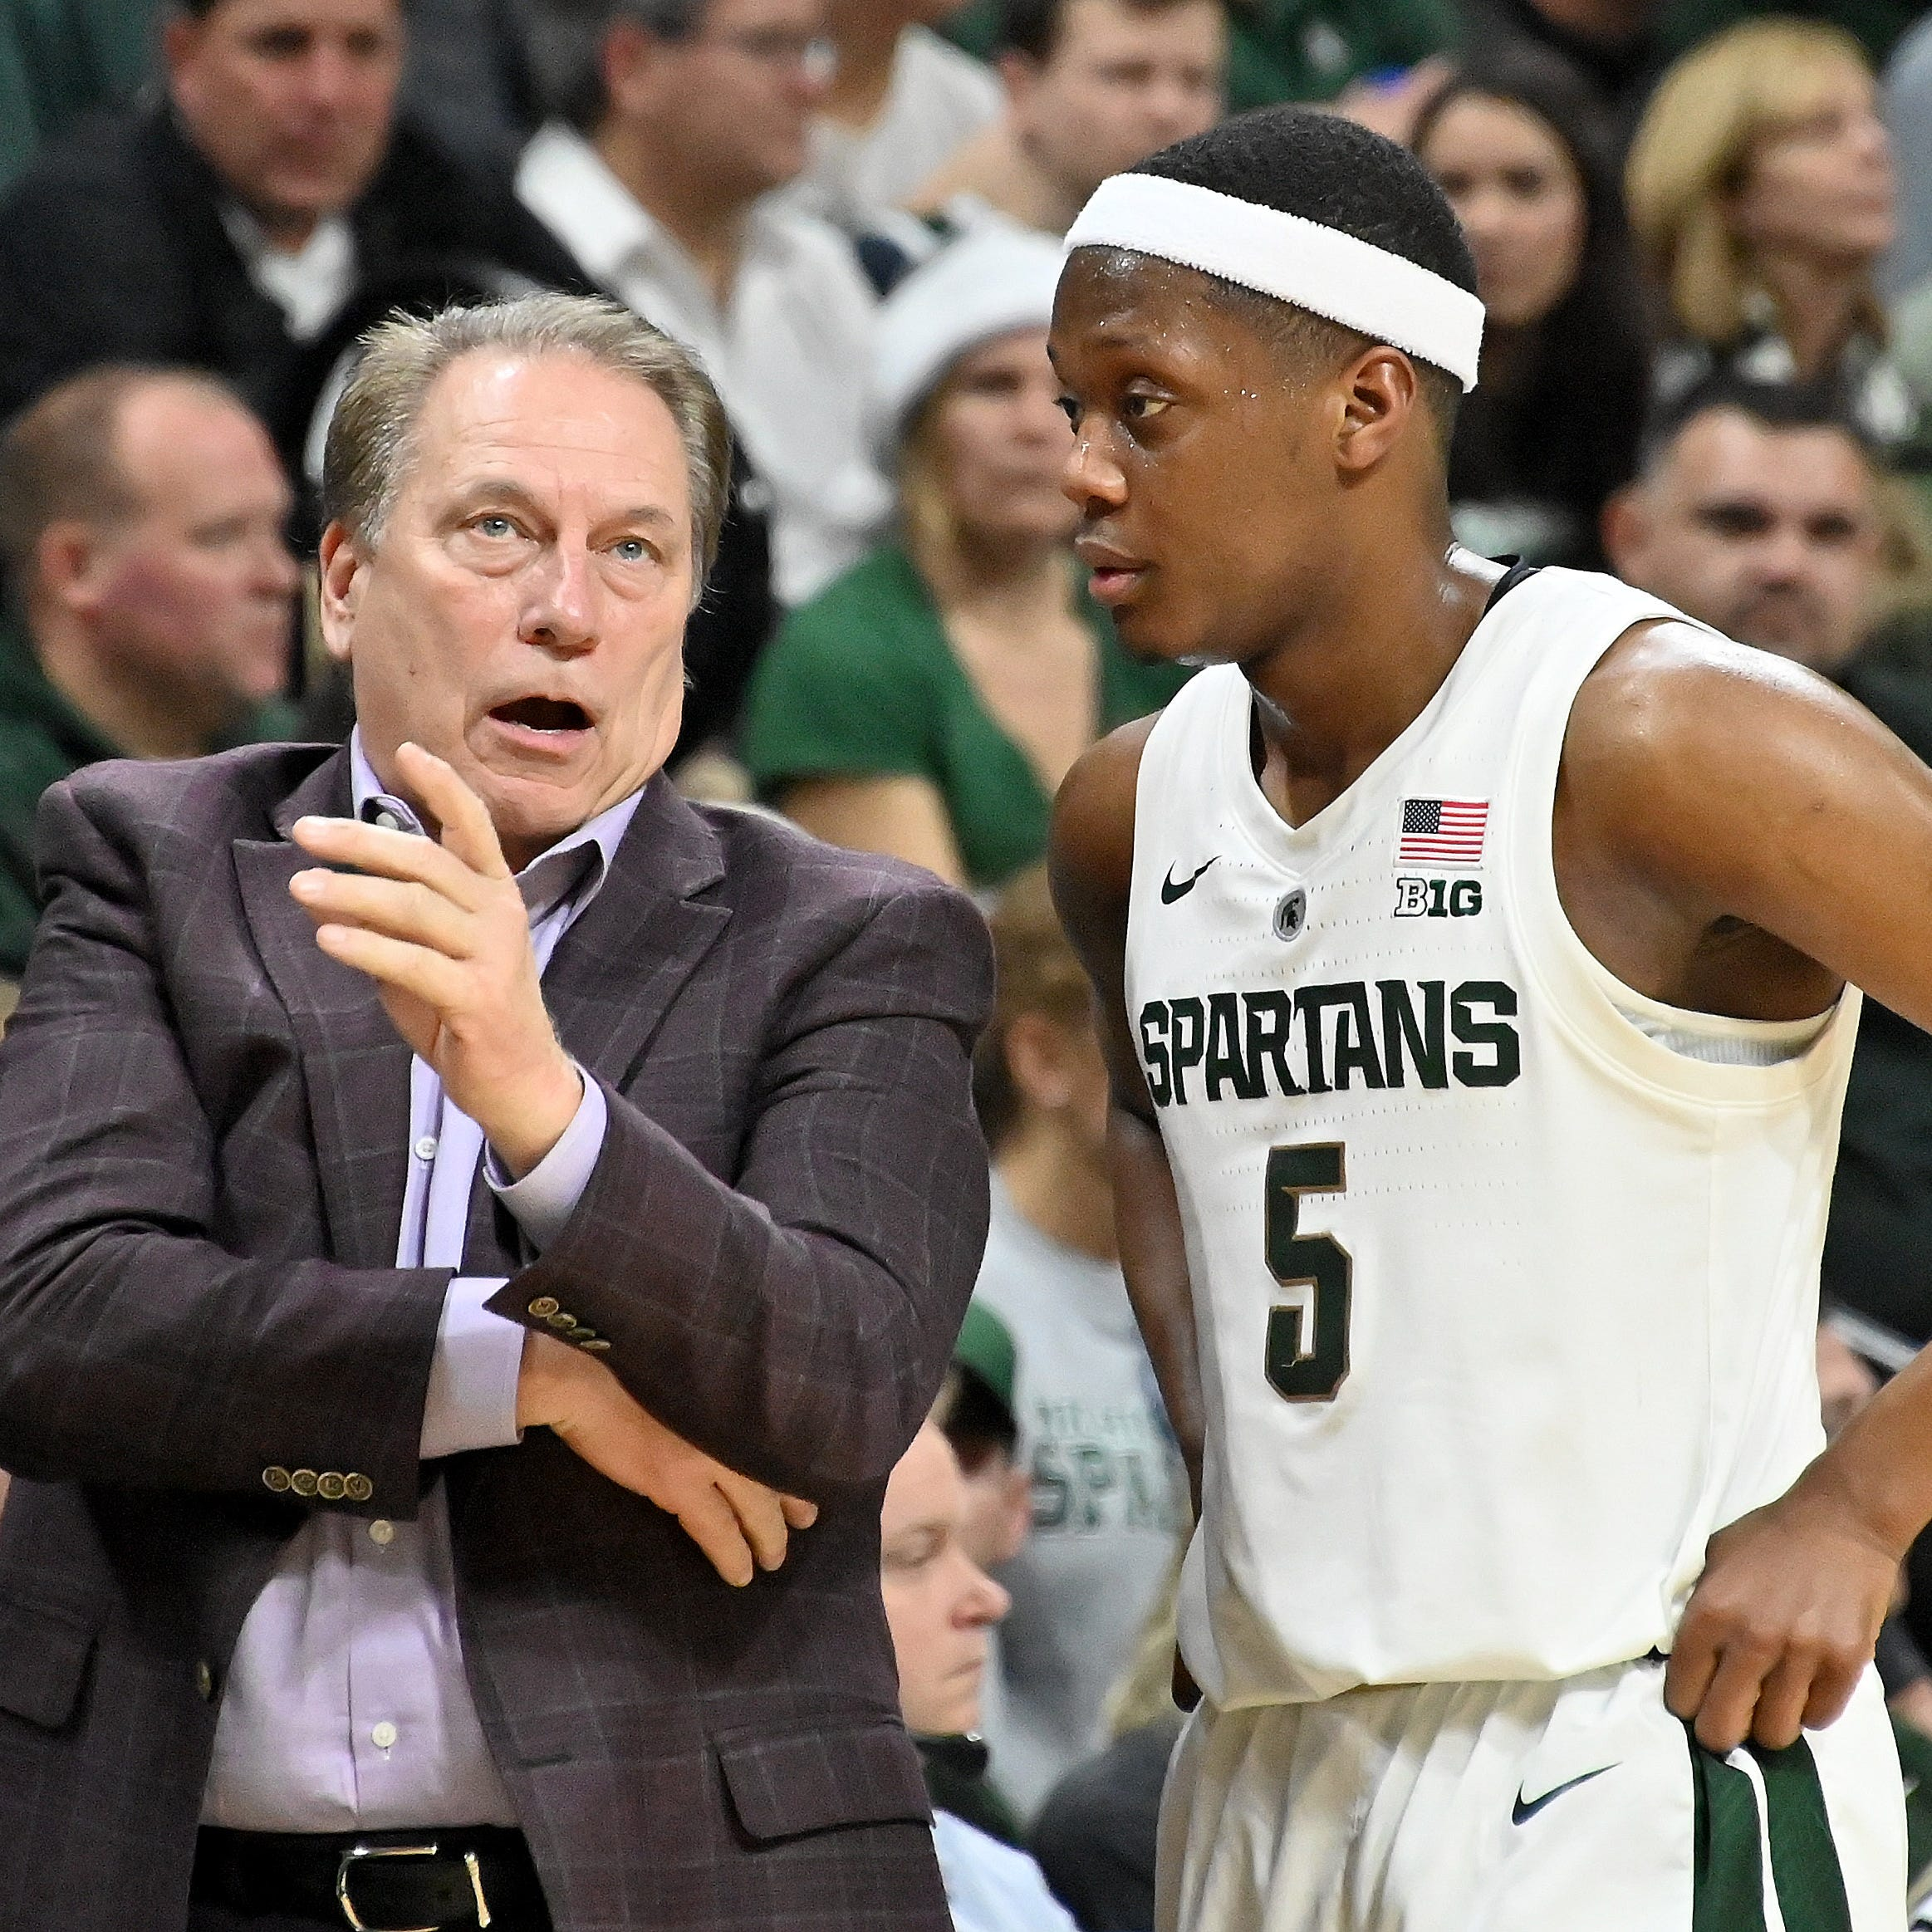 Michigan State's focus this week: 'We're gonna get better'